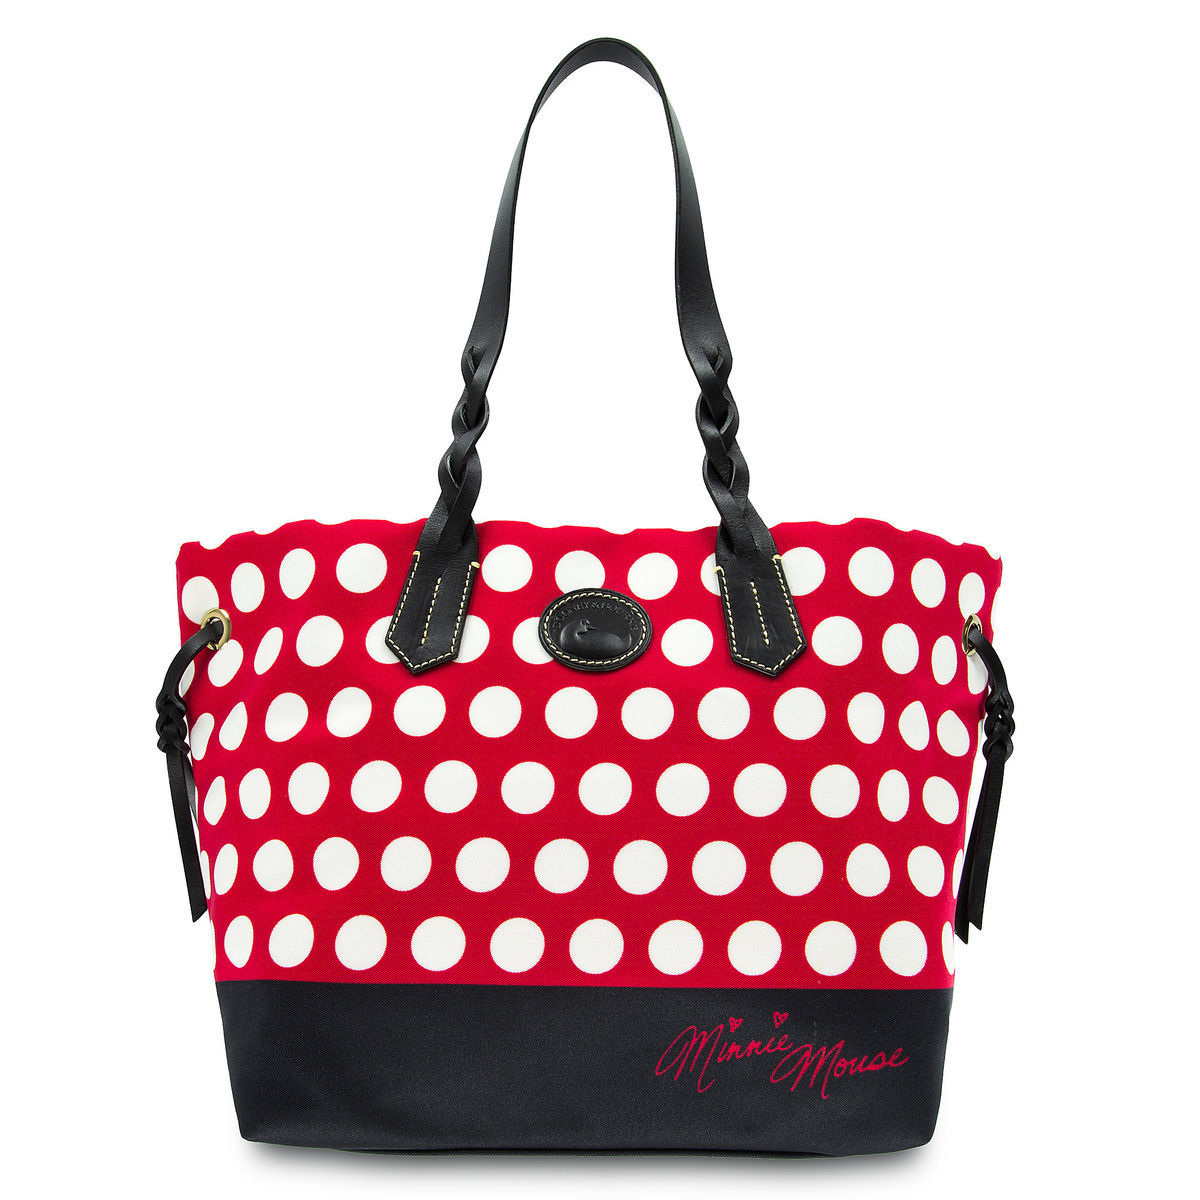 Product Image Of Minnie Mouse Rocks The Dots Tote By Dooney Bourke 1